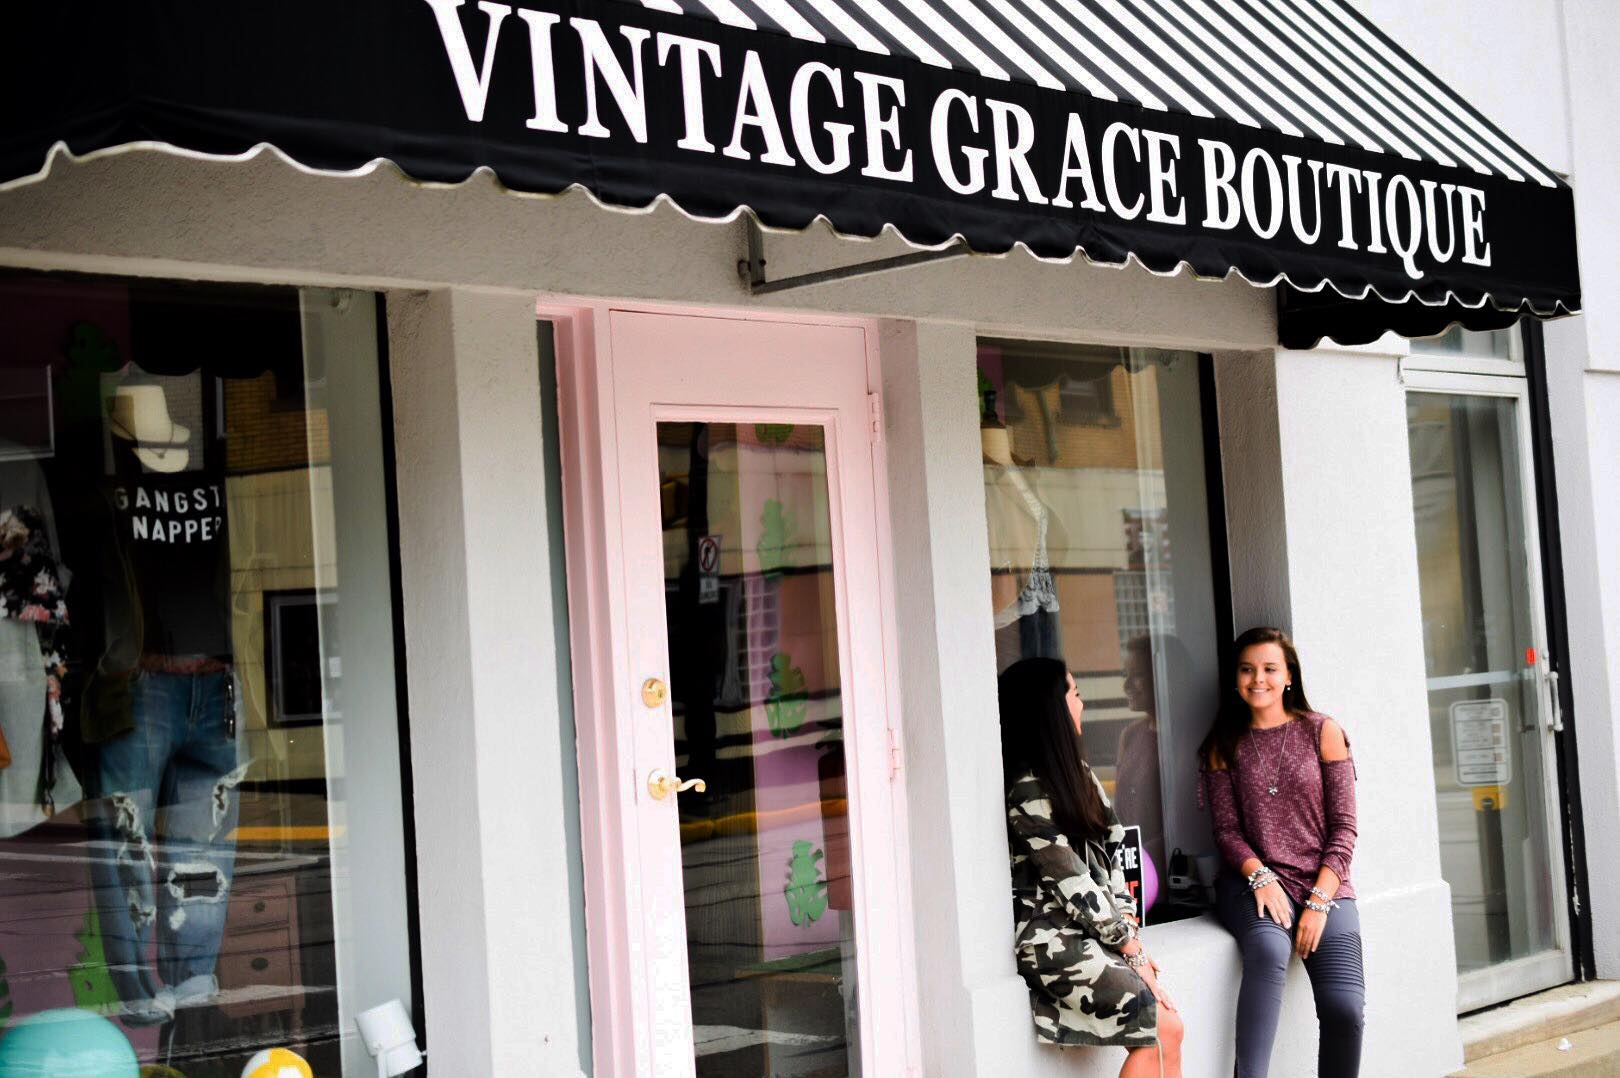 Vintage Grace Boutique